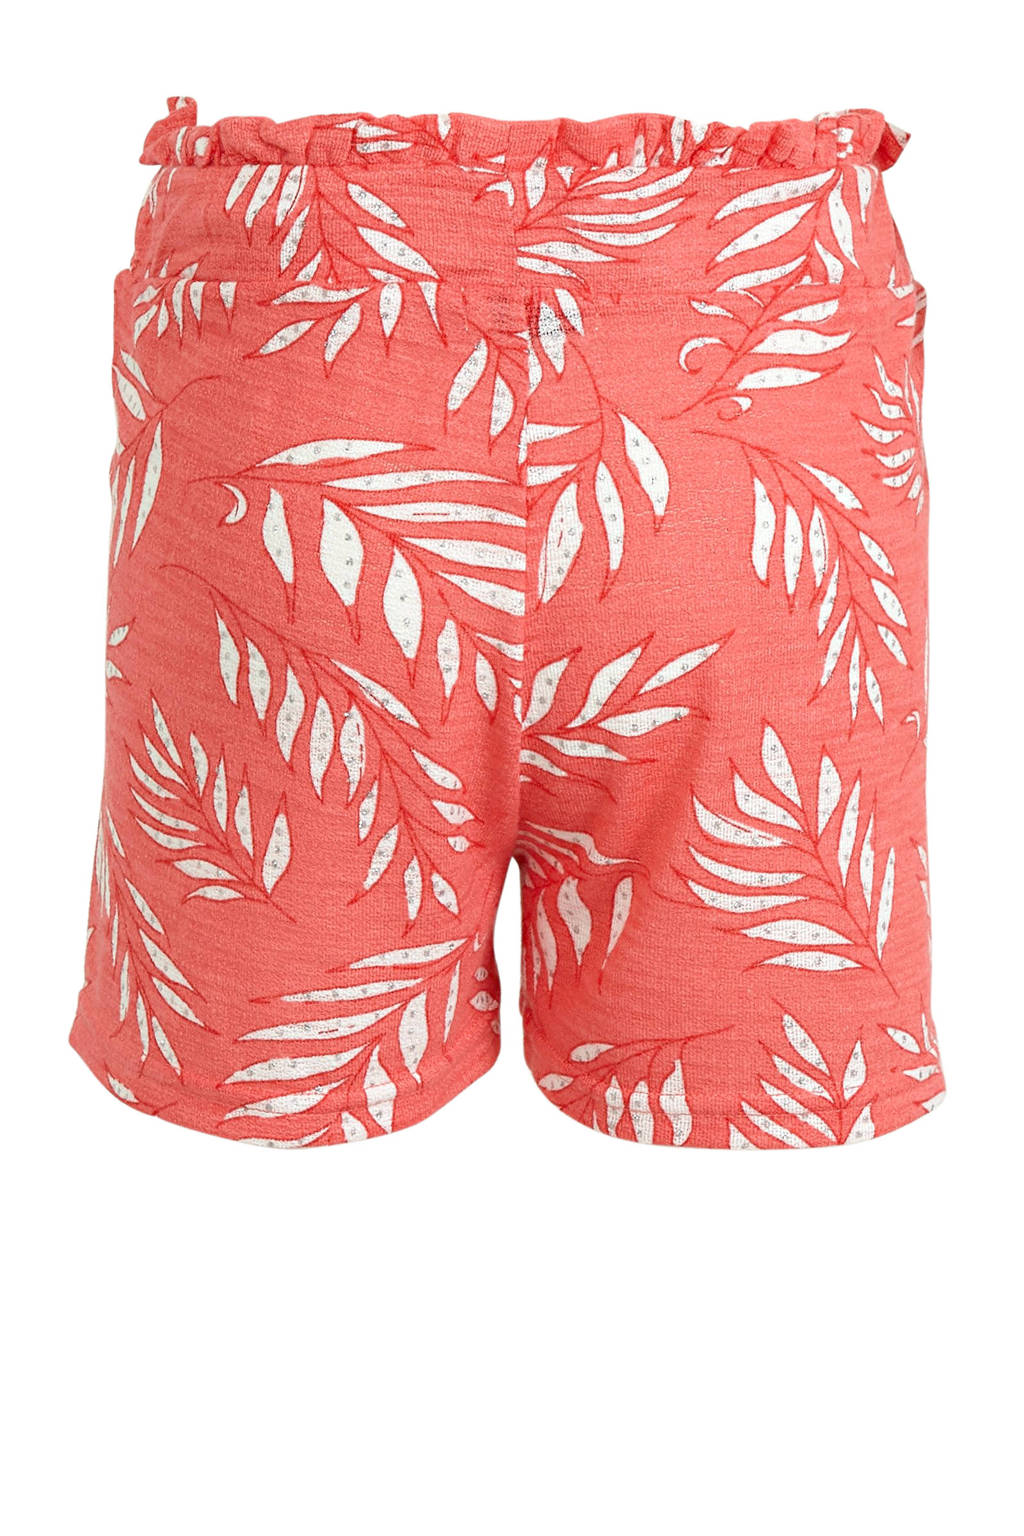 NAME IT KIDS strandshort Jiselle roze, Roze